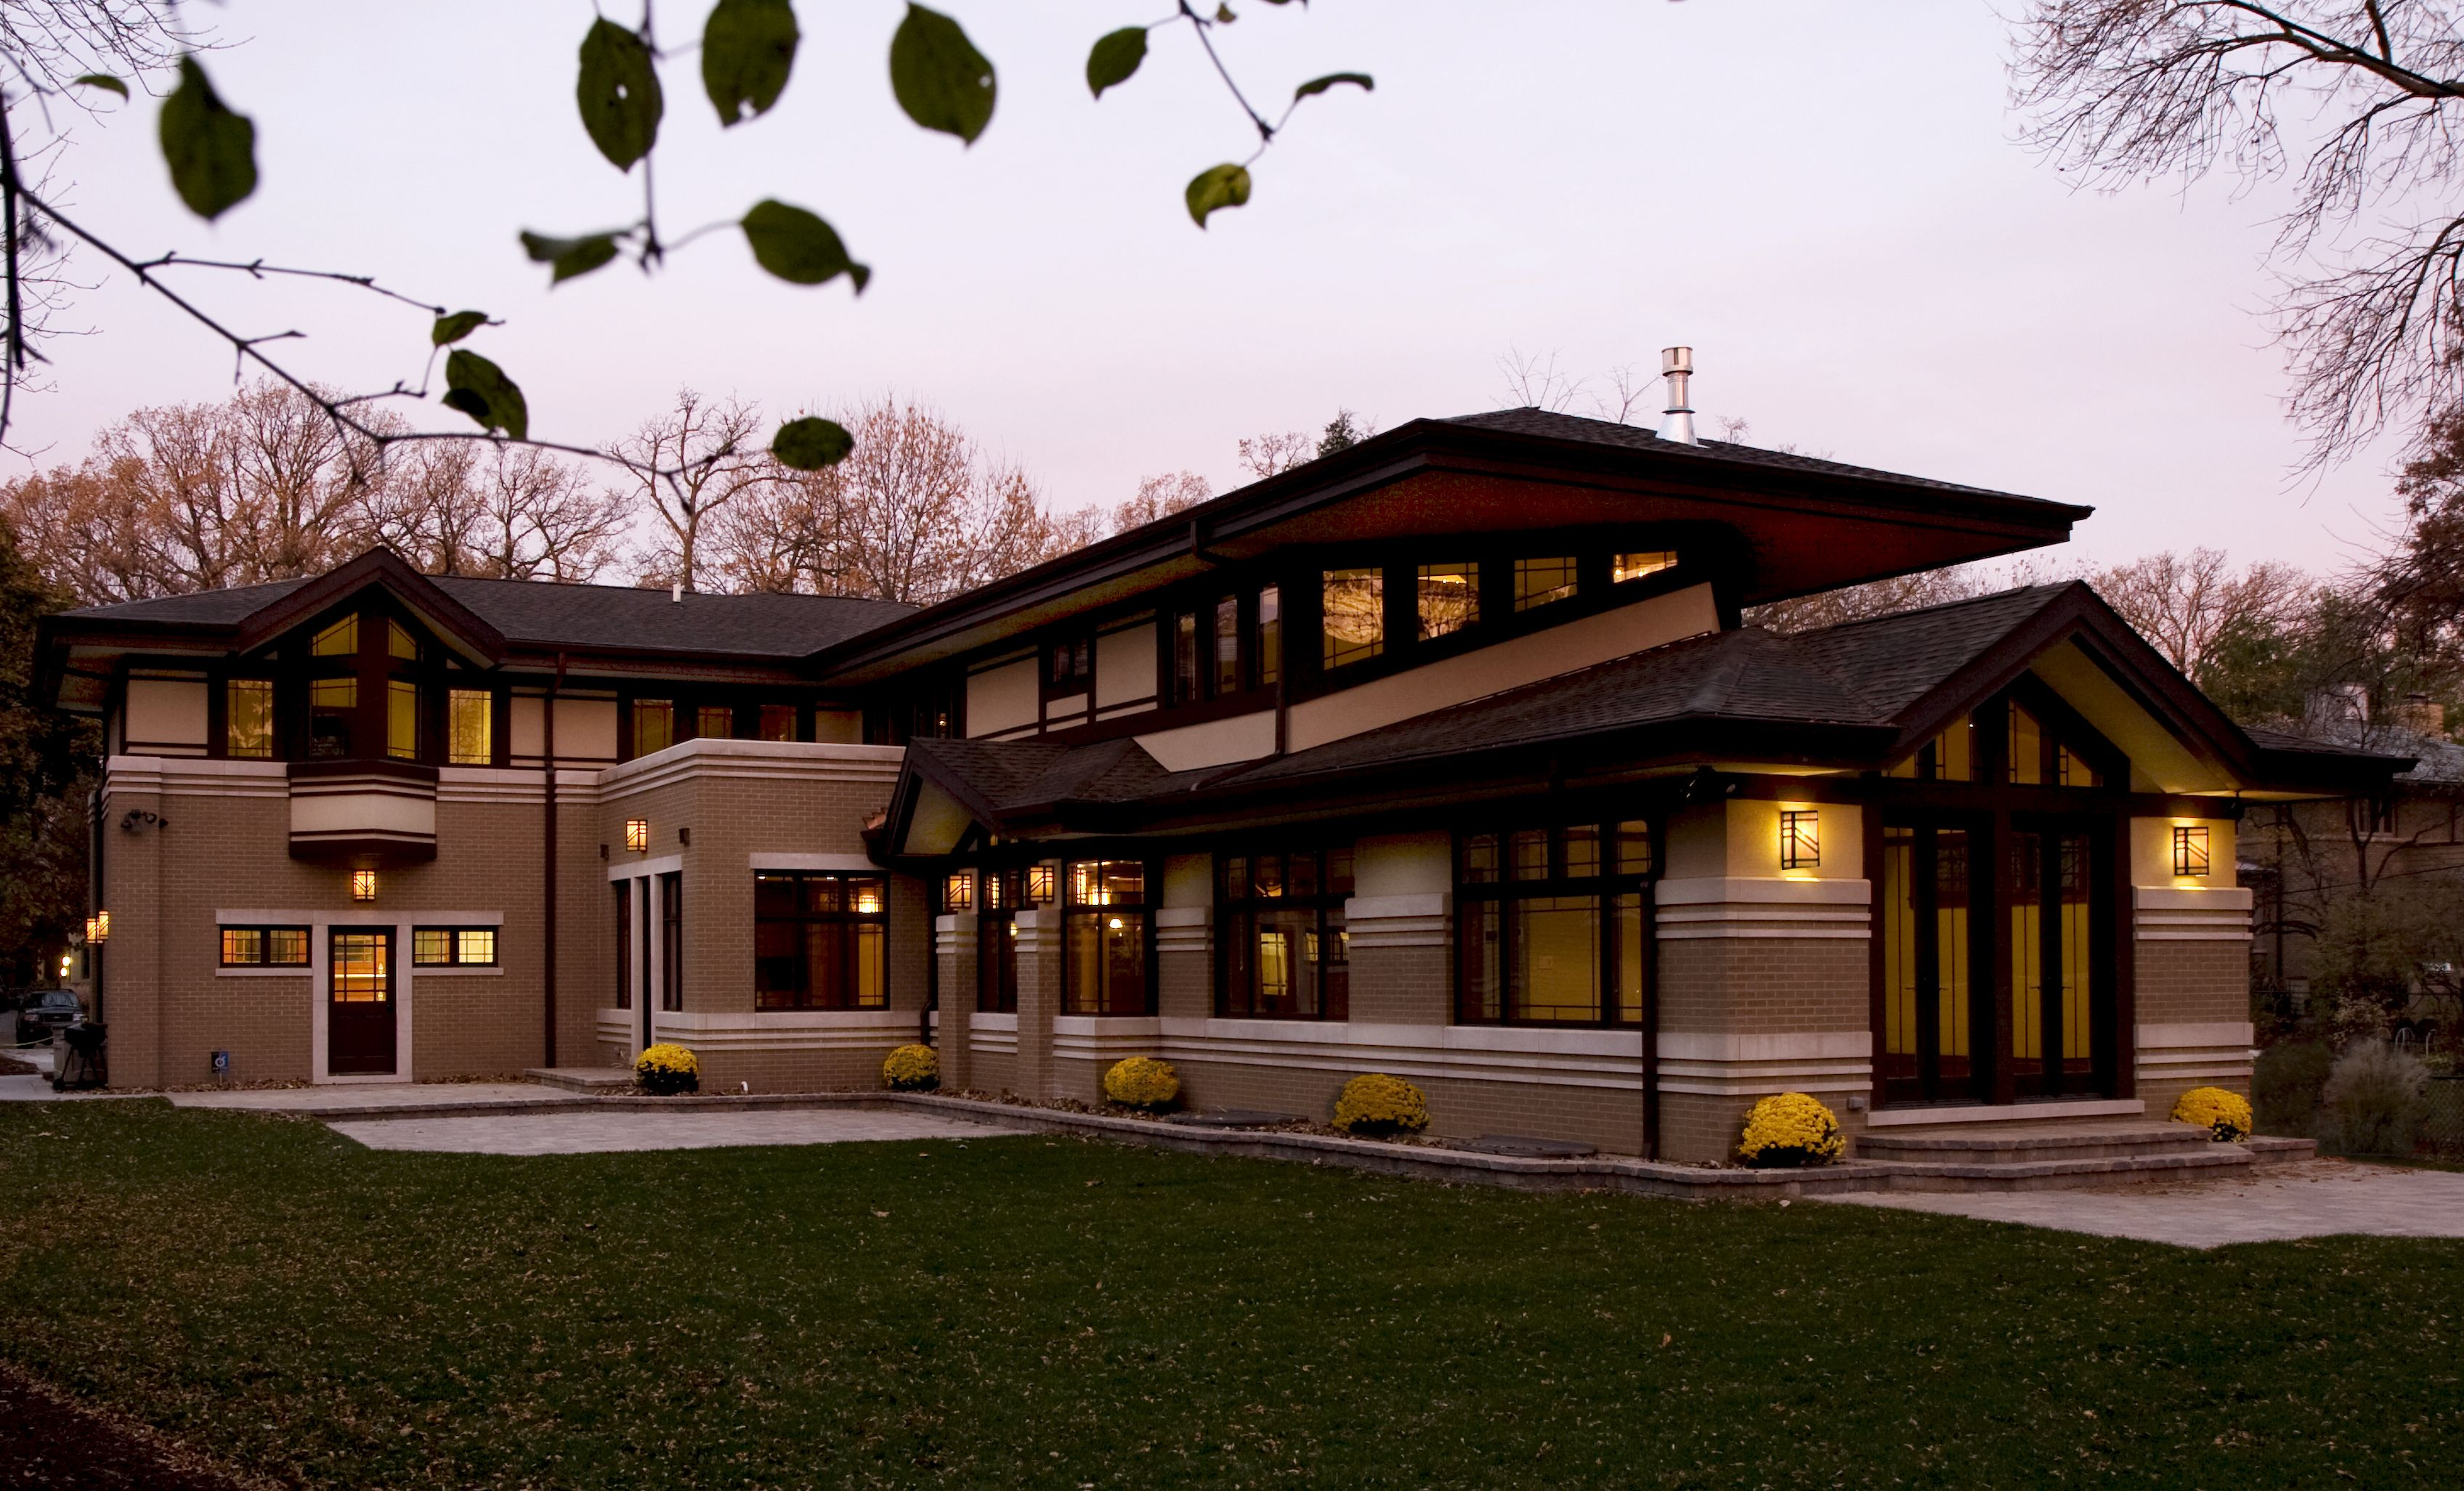 Frank Lloyd Wright Home And Studio Photo Image Gallery